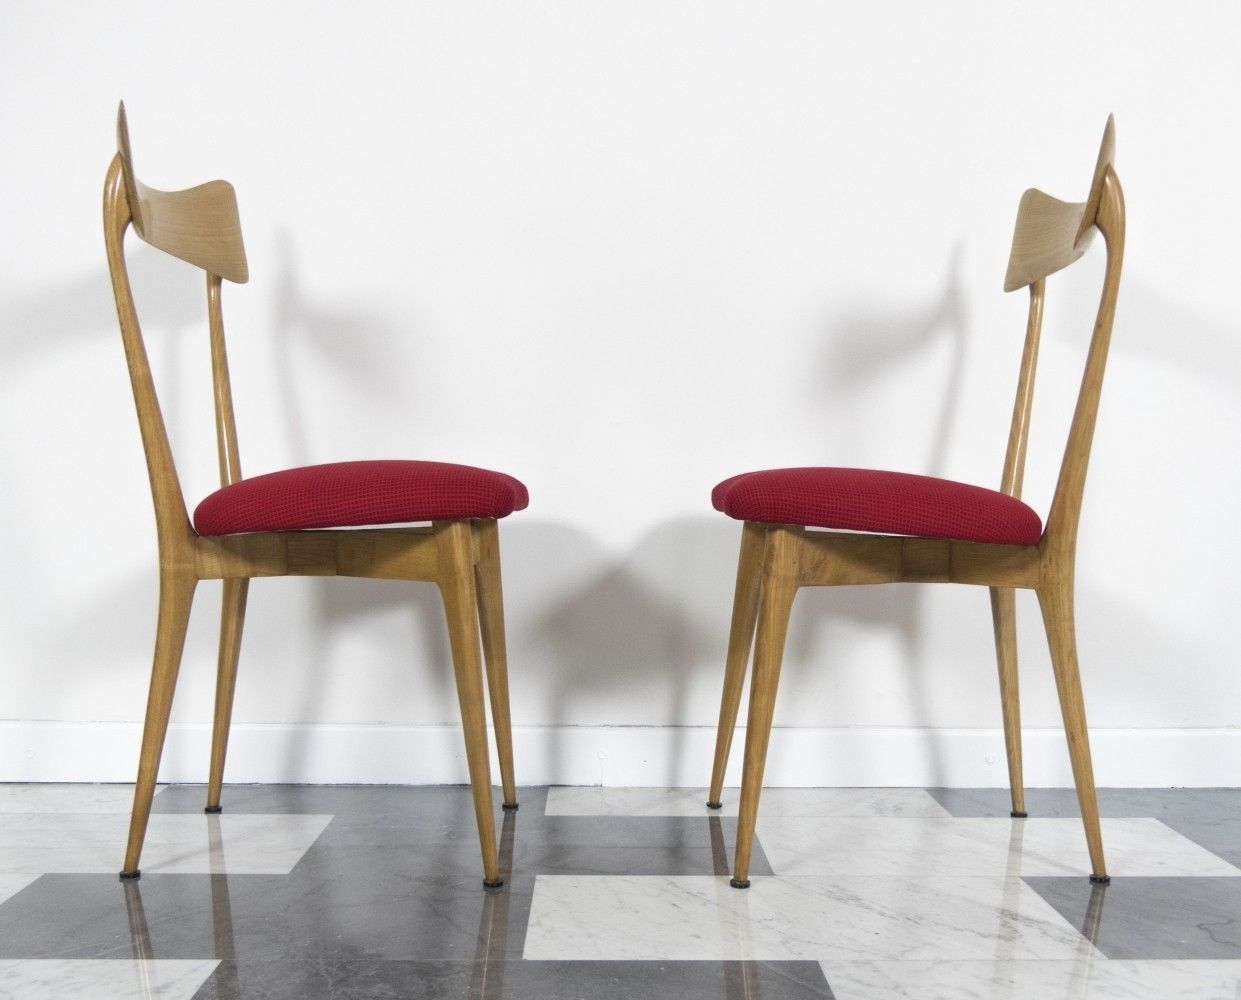 Anni 70 Arredamento set of 2 beech chairs by ico & luisa parisi, 1947